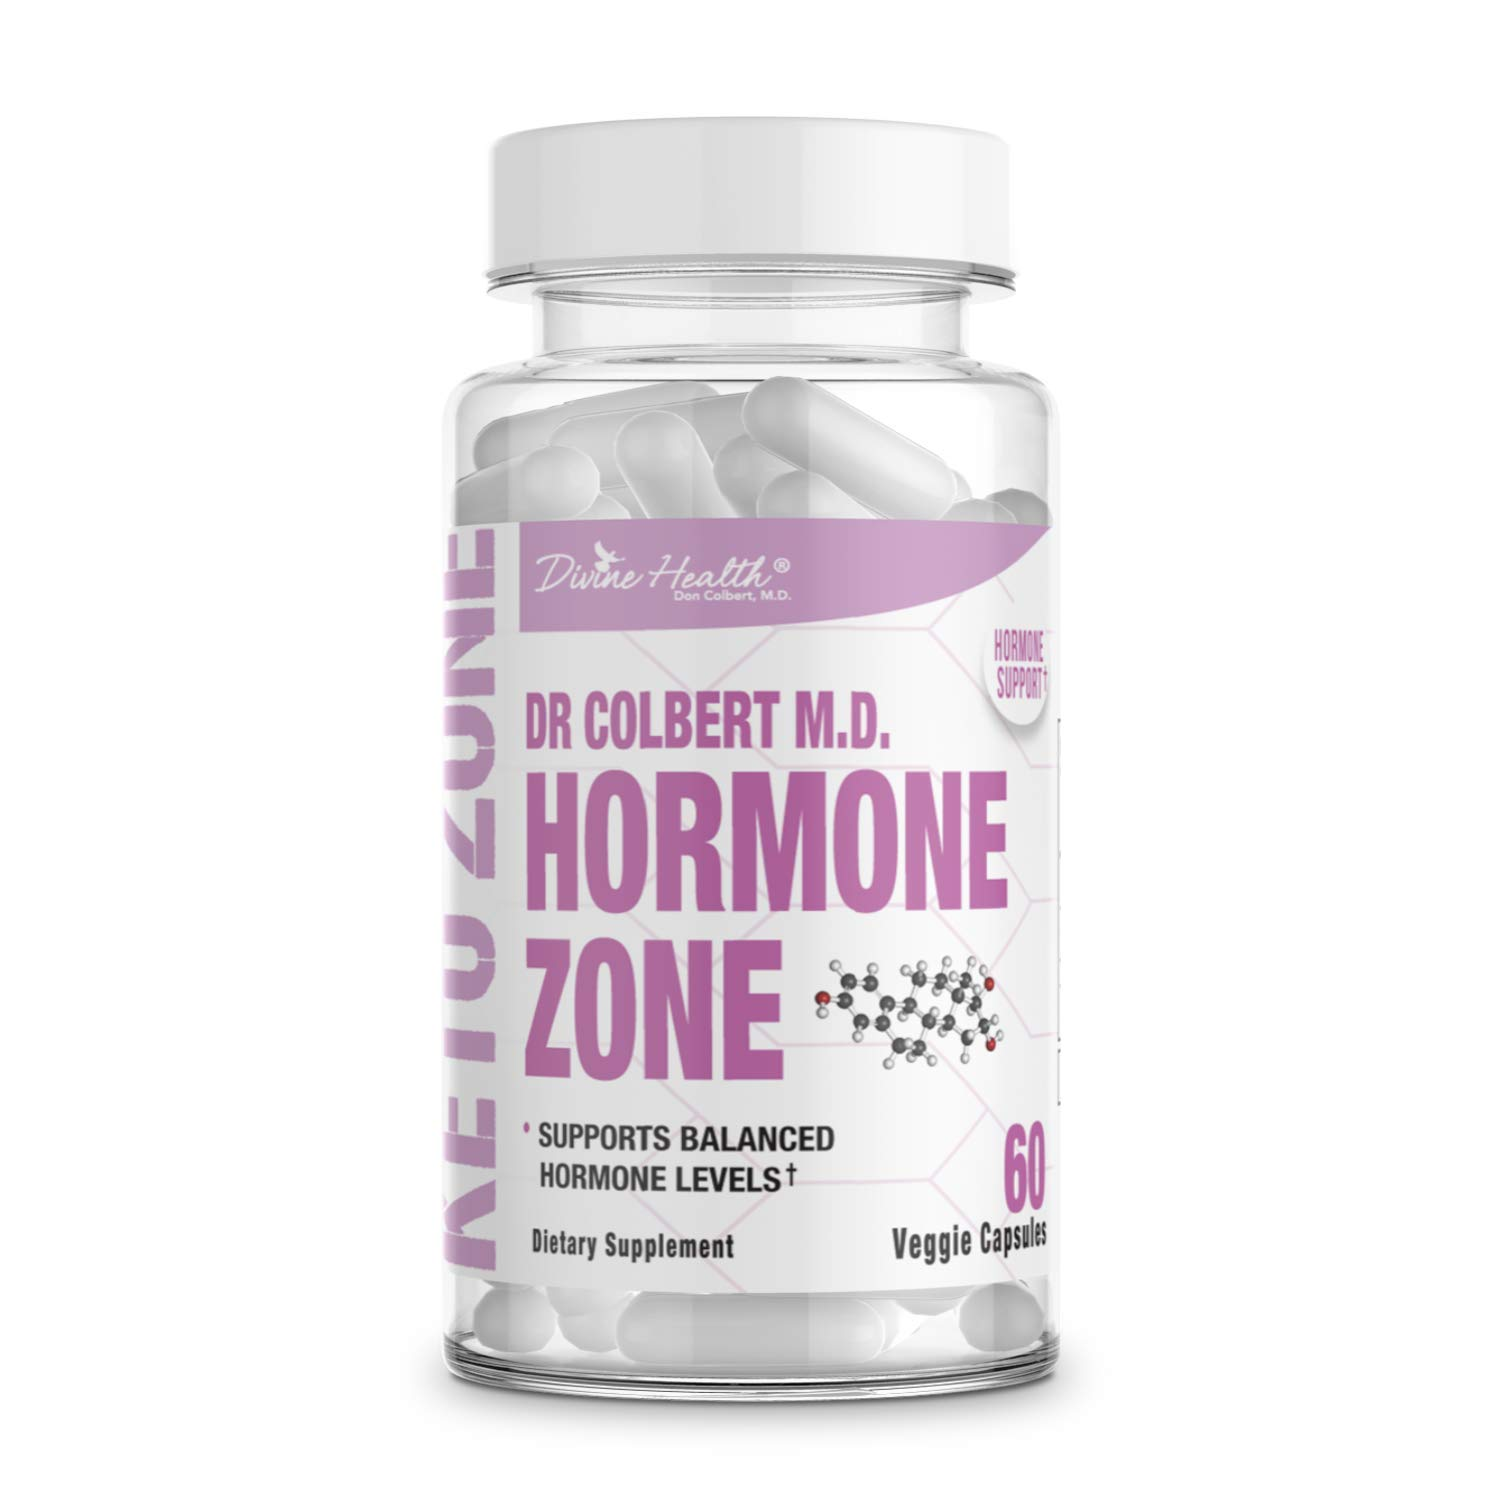 Divine Health Dr.Colbert's Hormone Zone for Health Hormone Levels Vitamins D3, K2 and Diindolylmethane (DIM) by Divine Health